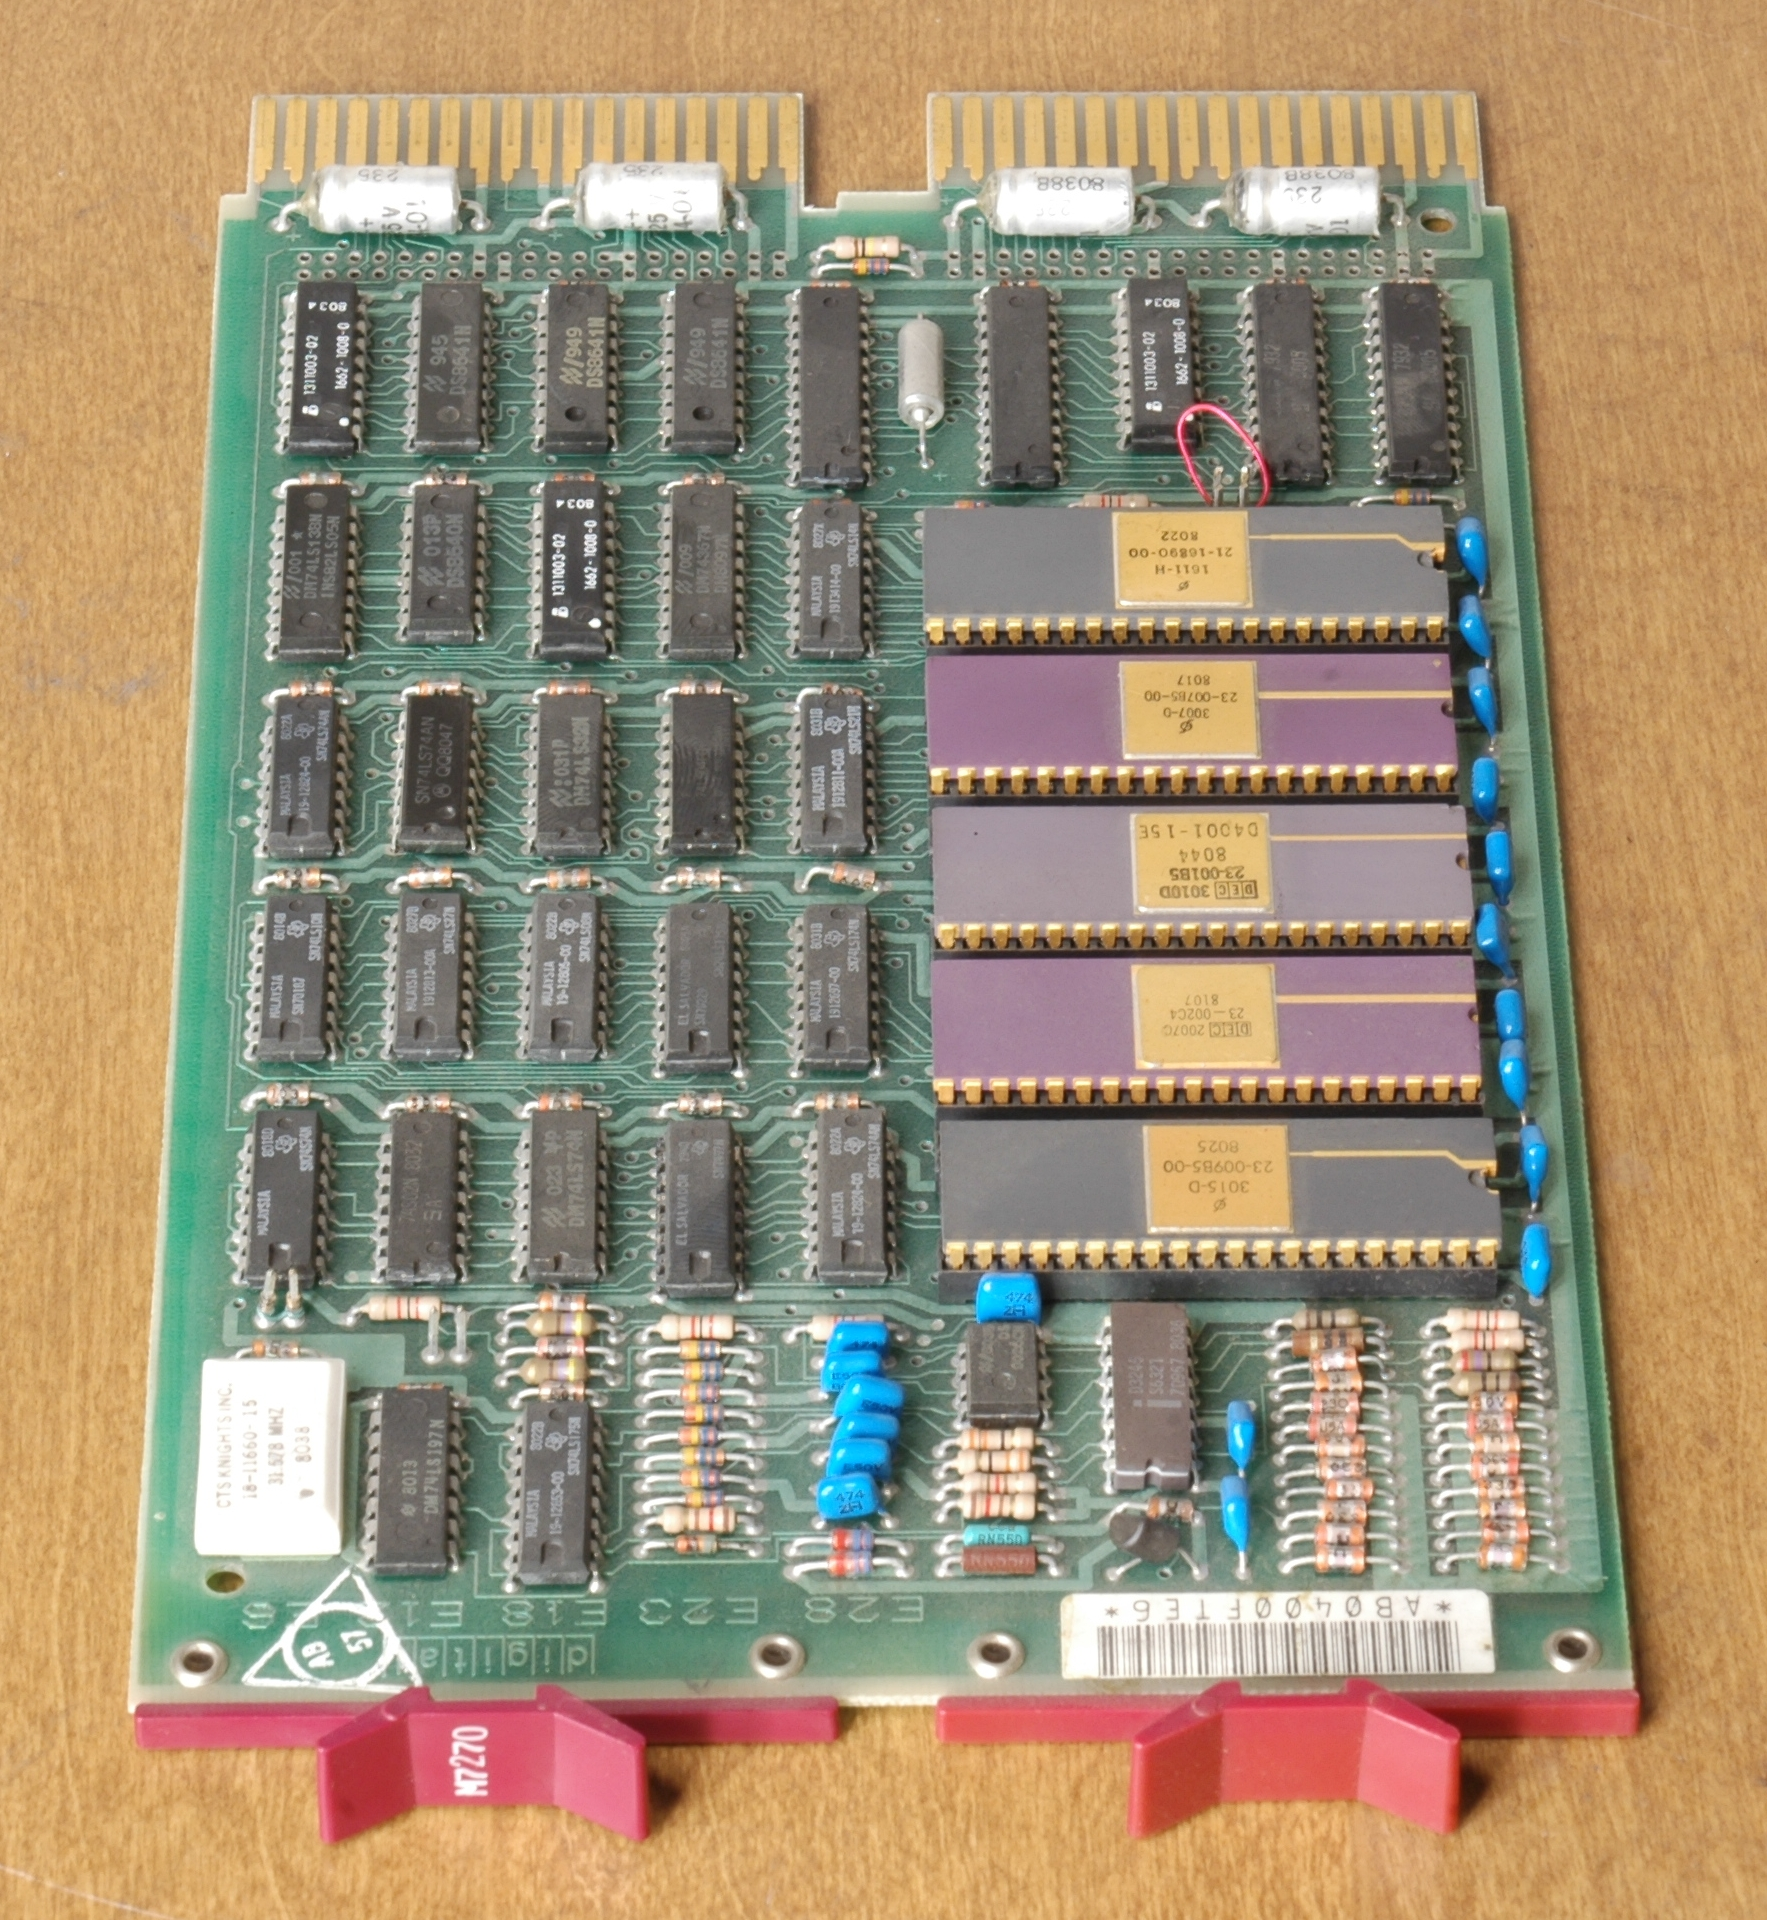 Q-Bus board with LSI-11/2 CPU